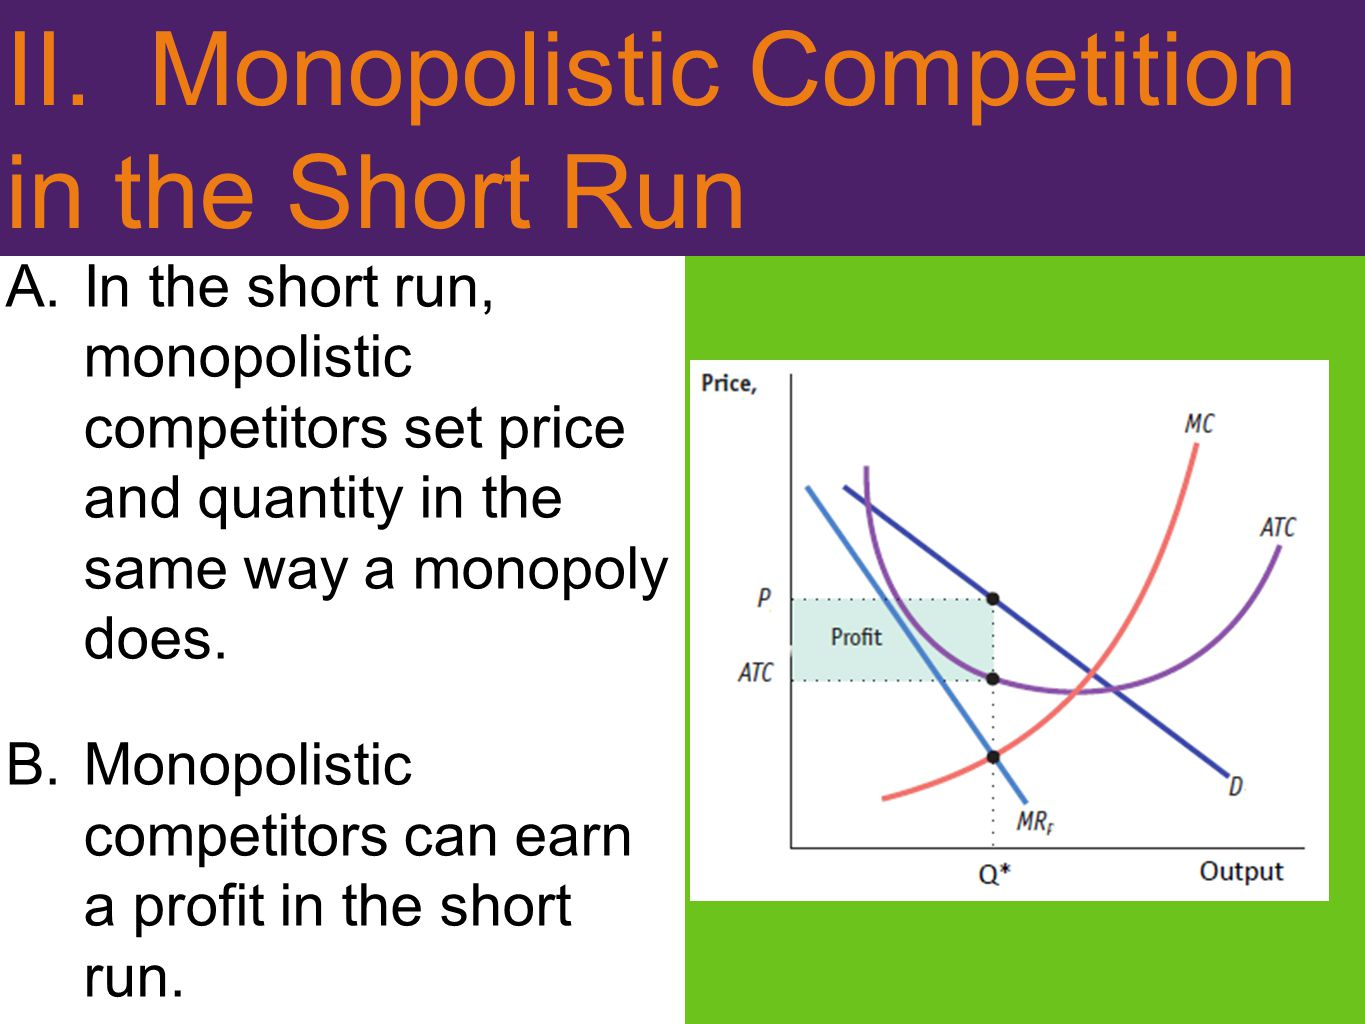 II. Monopolistic Competition in the Short Run A.In the short run, monopolistic competitors set price and quantity in the same way a monopoly does. B.M